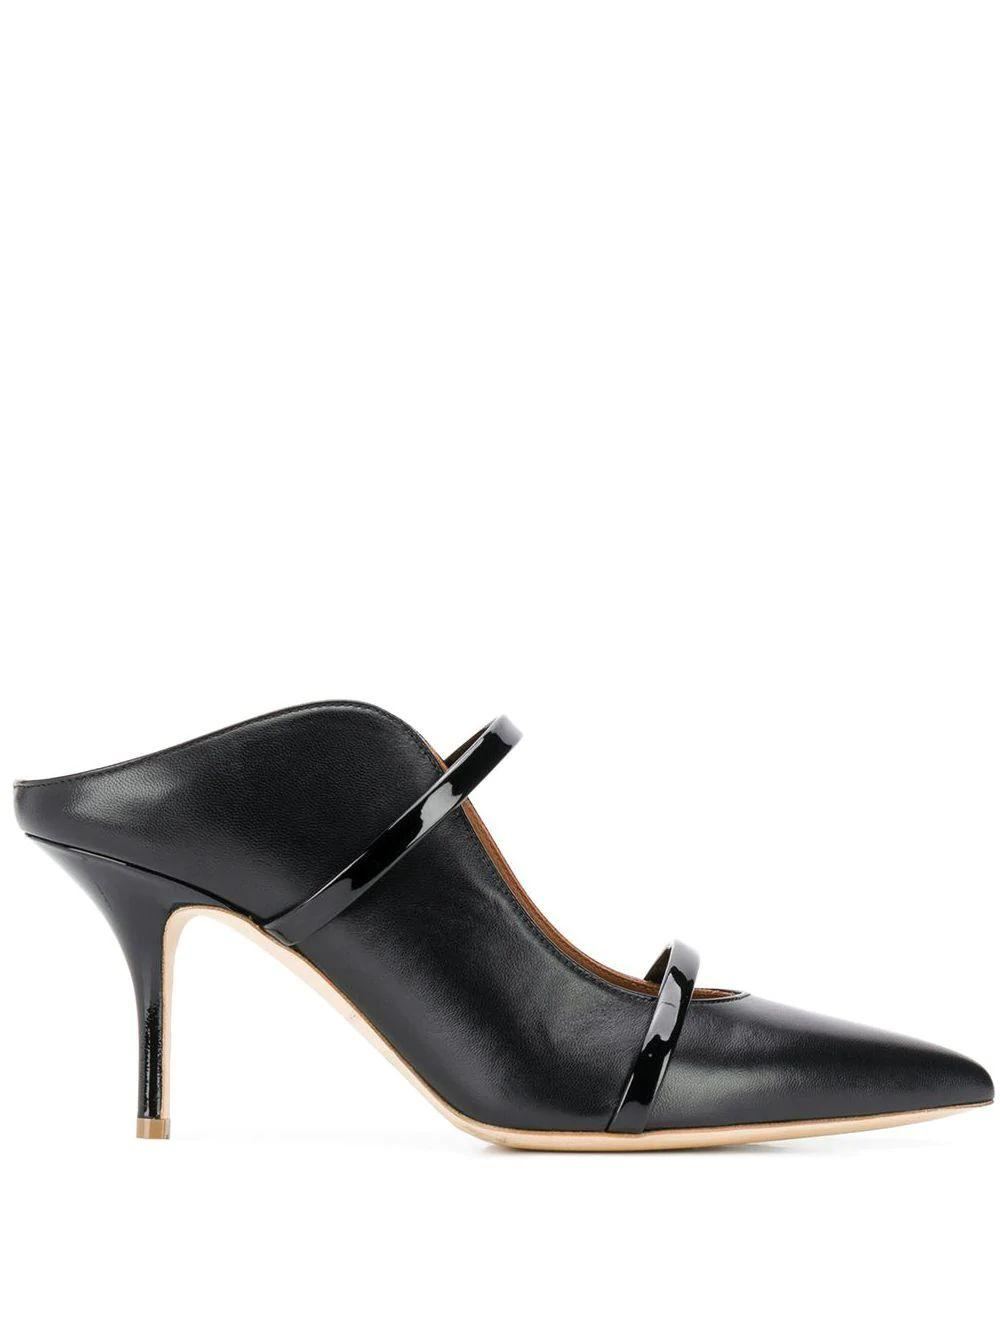 Maureen 70mm Mule Item # MAUREEN70-83